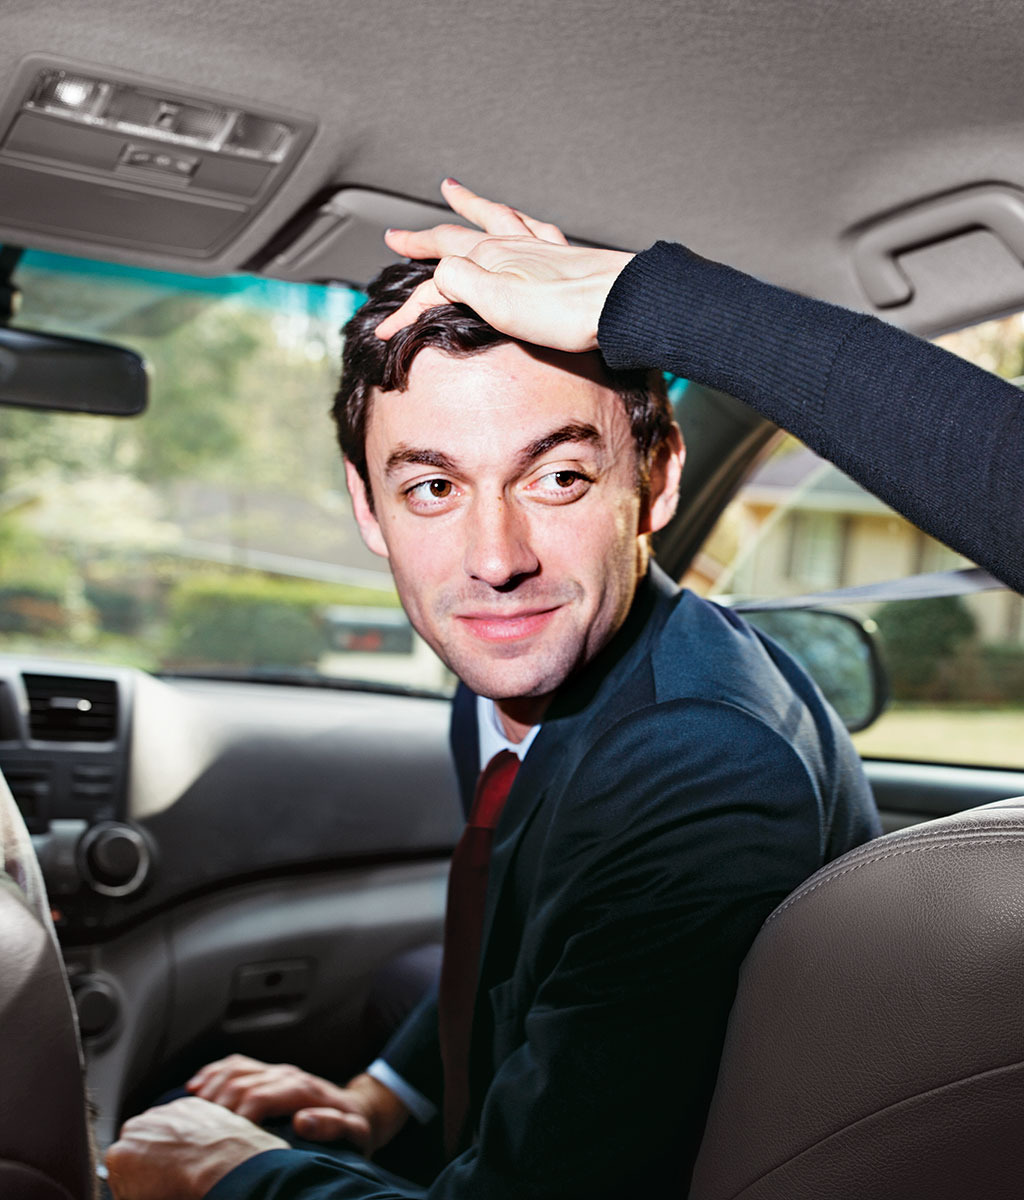 Jon Ossoff younger photo one at nymag.com